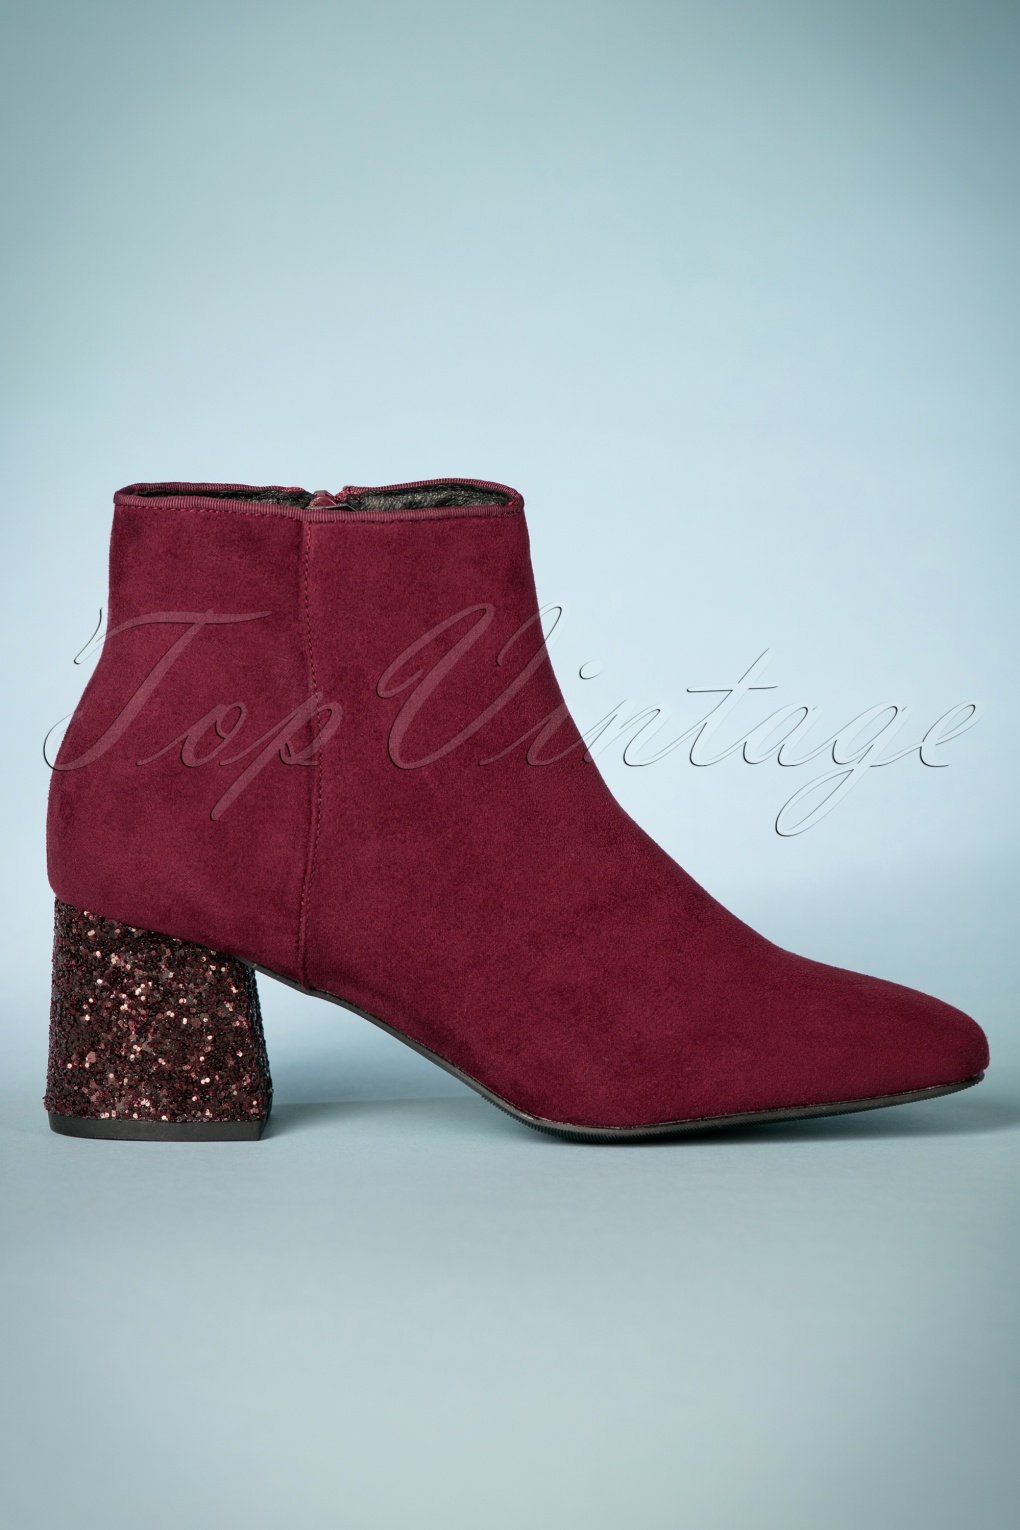 Retro Boots, Granny Boots, 70s Boots 70s Ankle Booties in Bedazzling Burgundy £53.29 AT vintagedancer.com